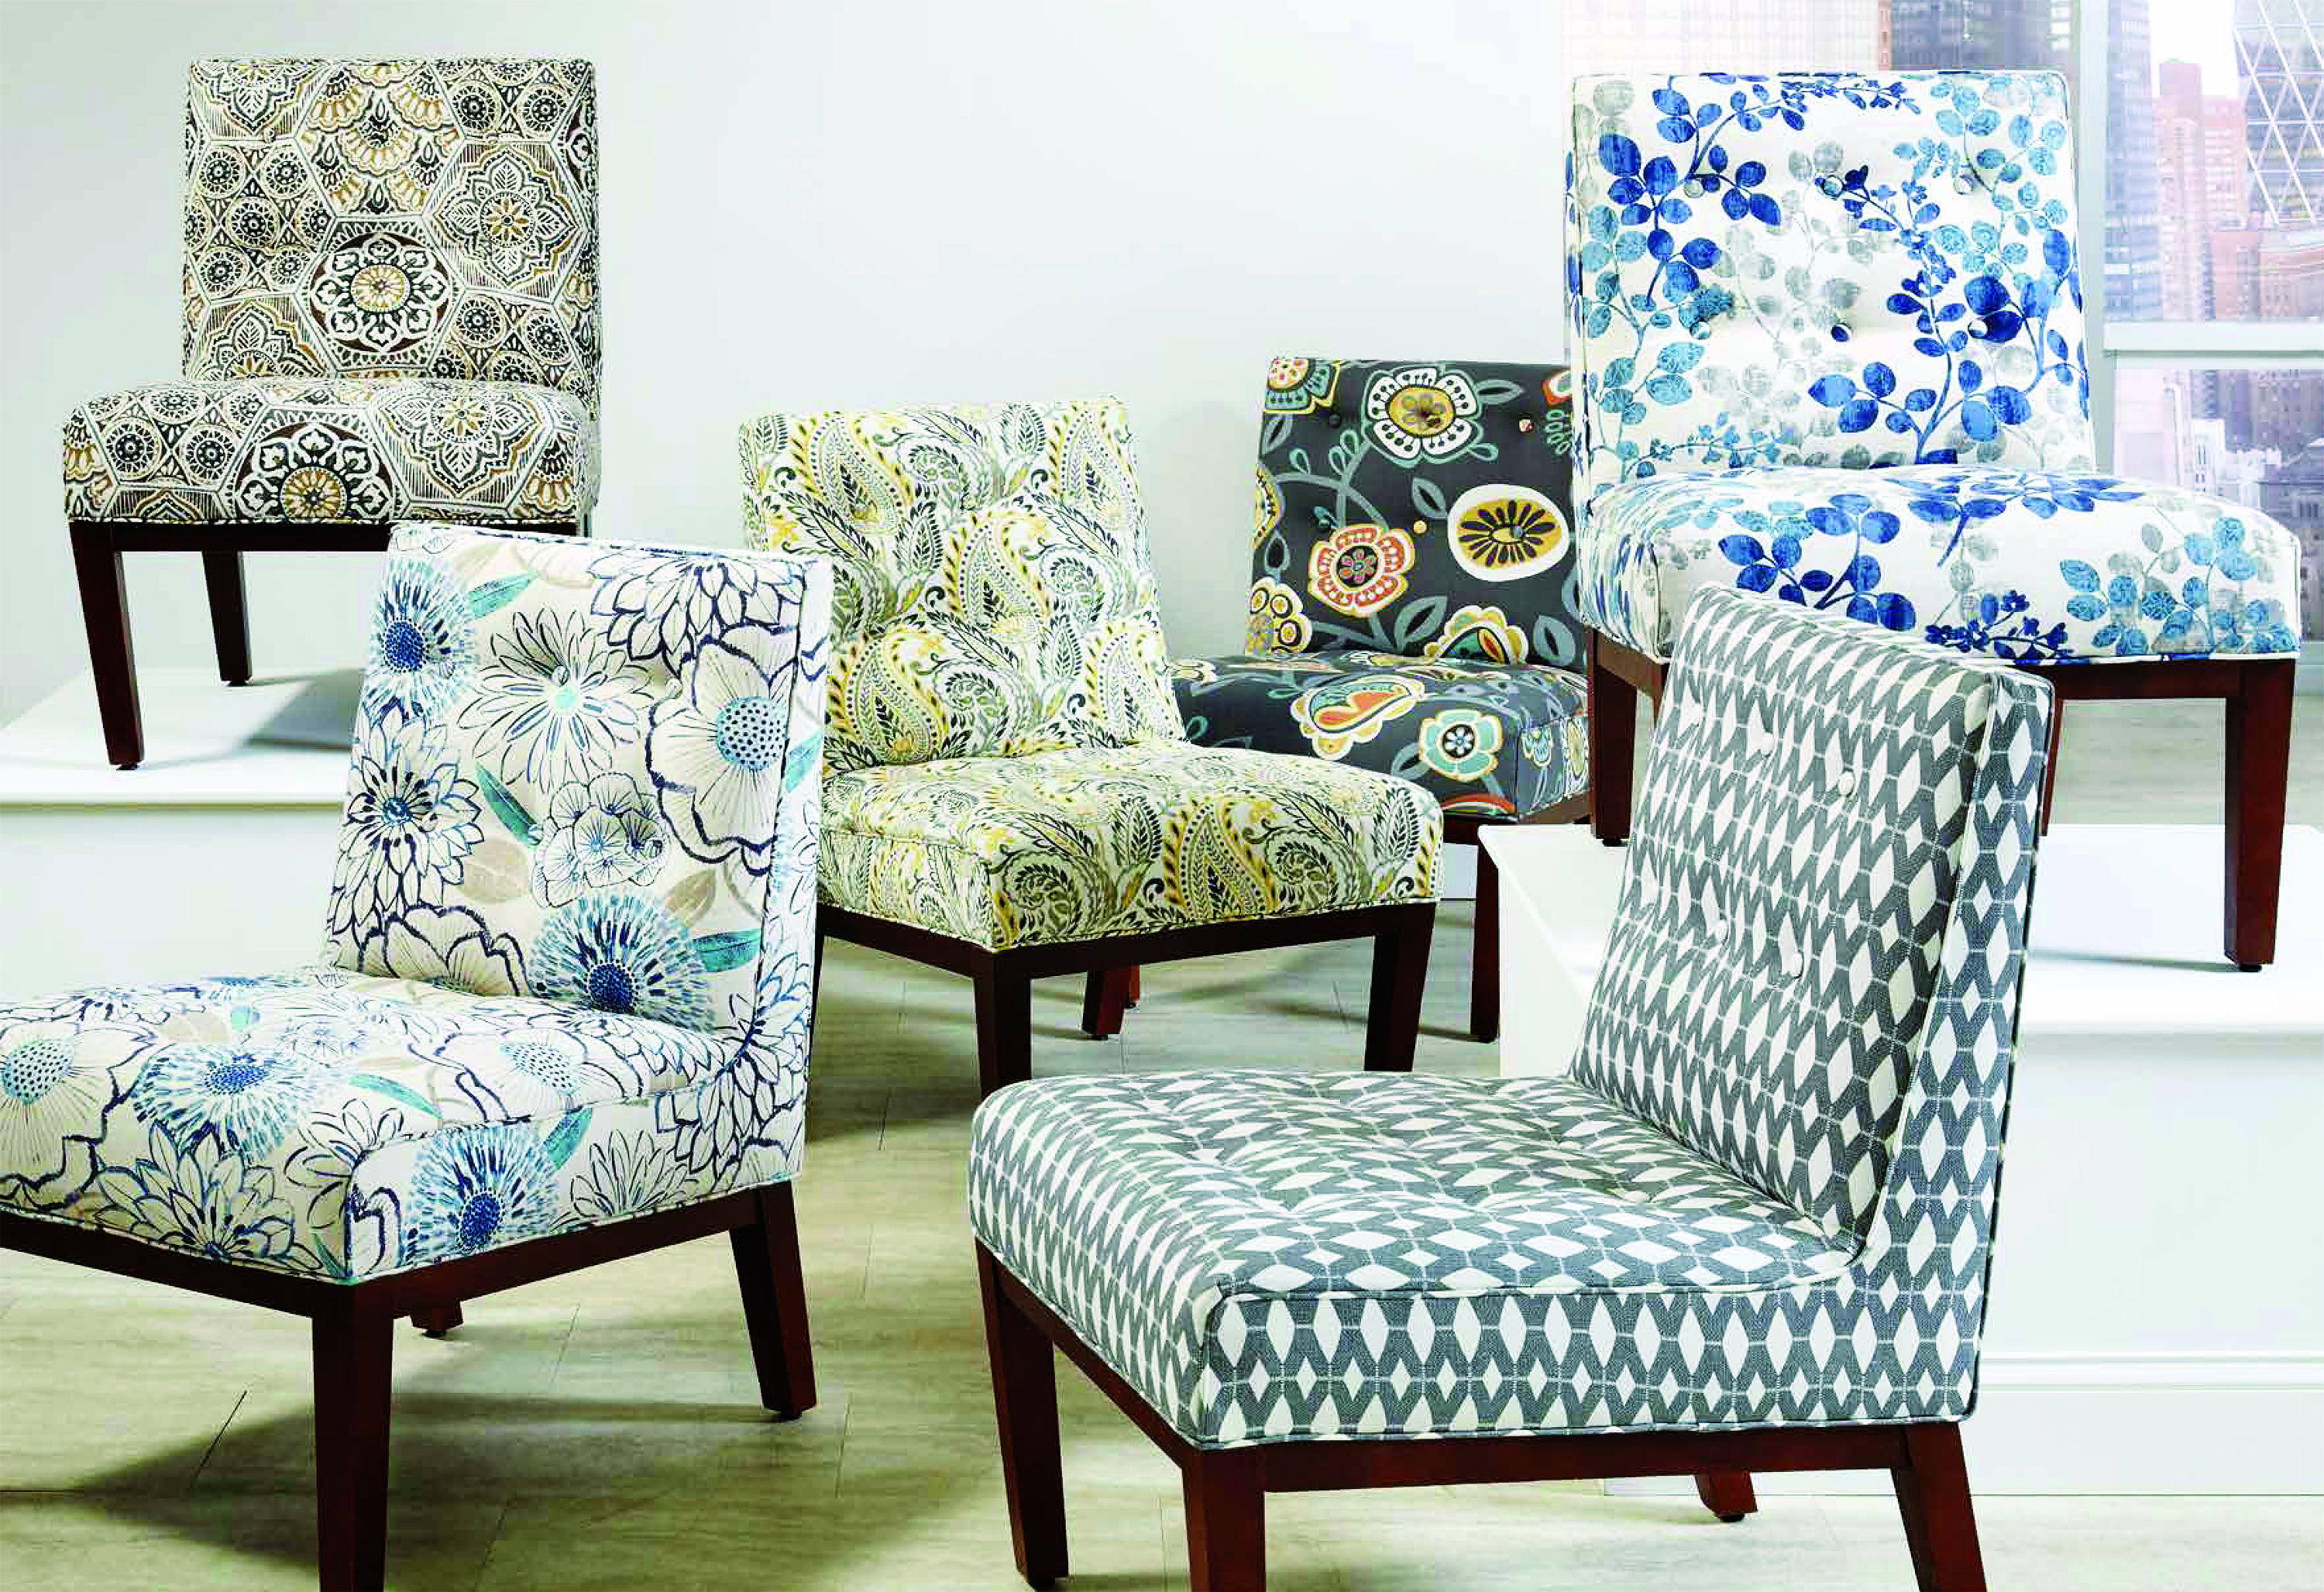 RICHLOOM FABRICS GROUP: Fortress Collection, Acrylic group